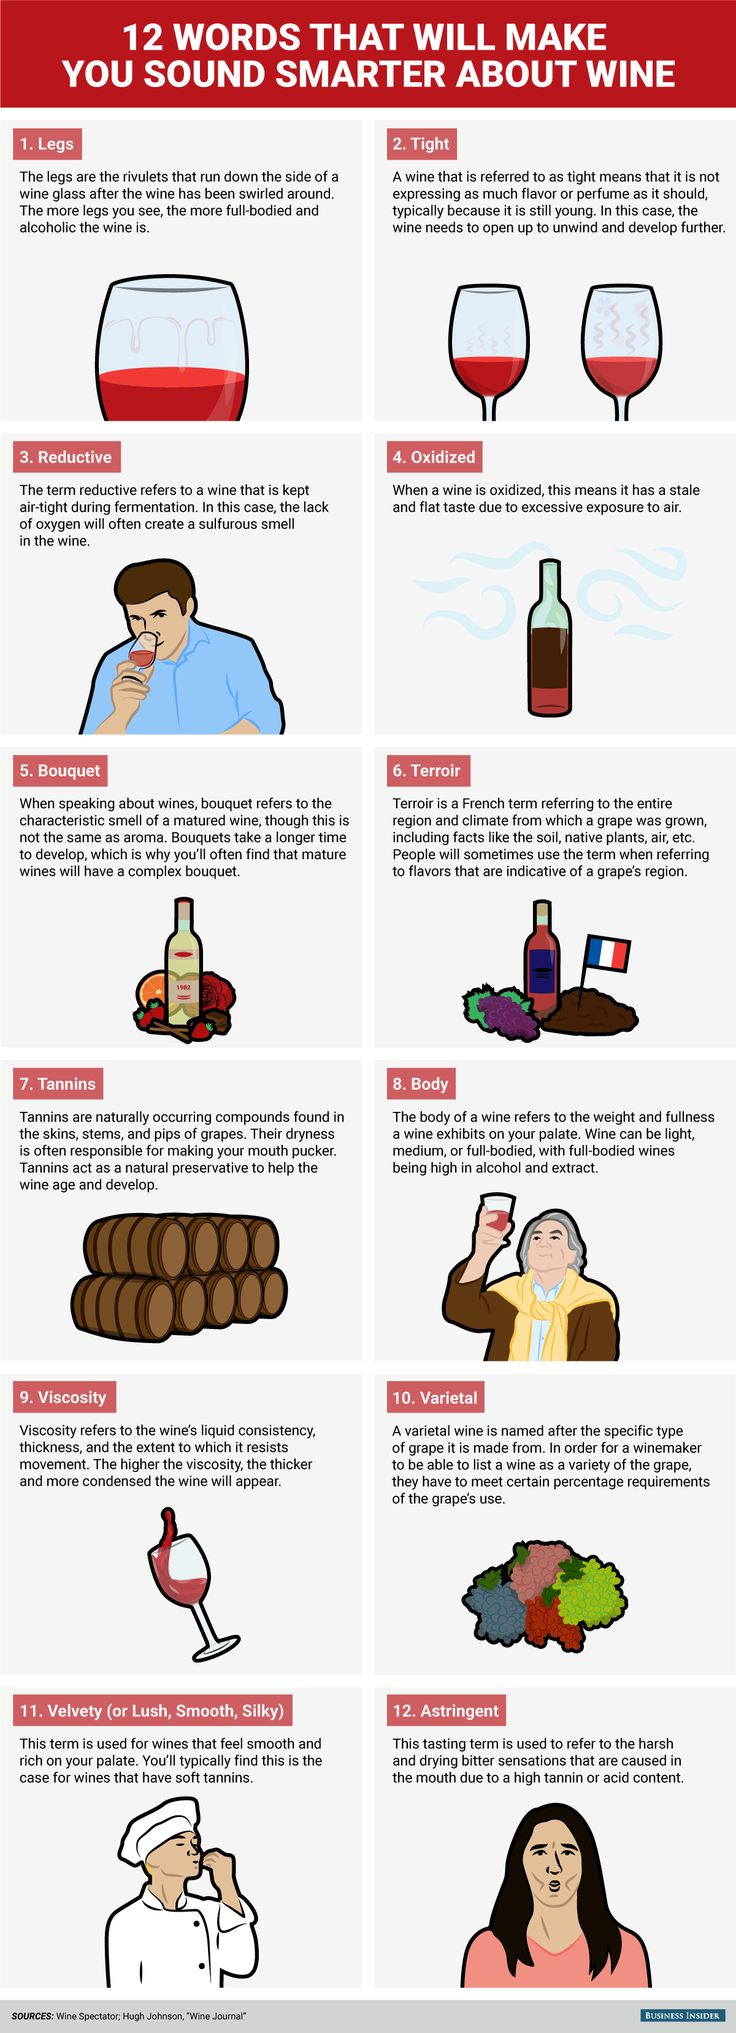 12 Terms To sound Smarter About Wine